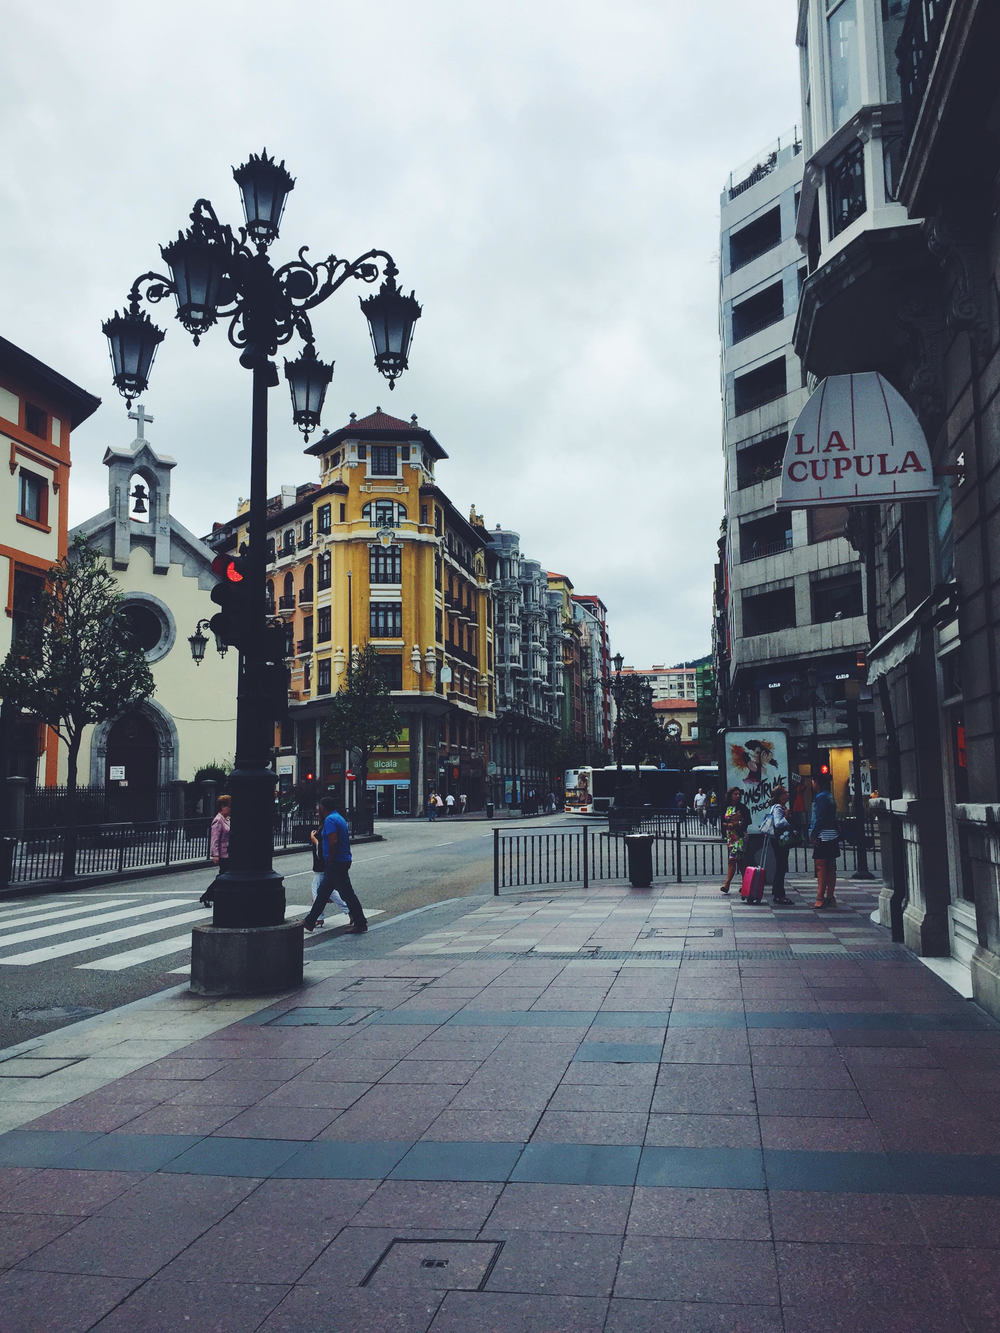 The streets of Oviedo. Woody Allen's favorite city in Spain. Traveling like a local with a Photo Travel Guide.